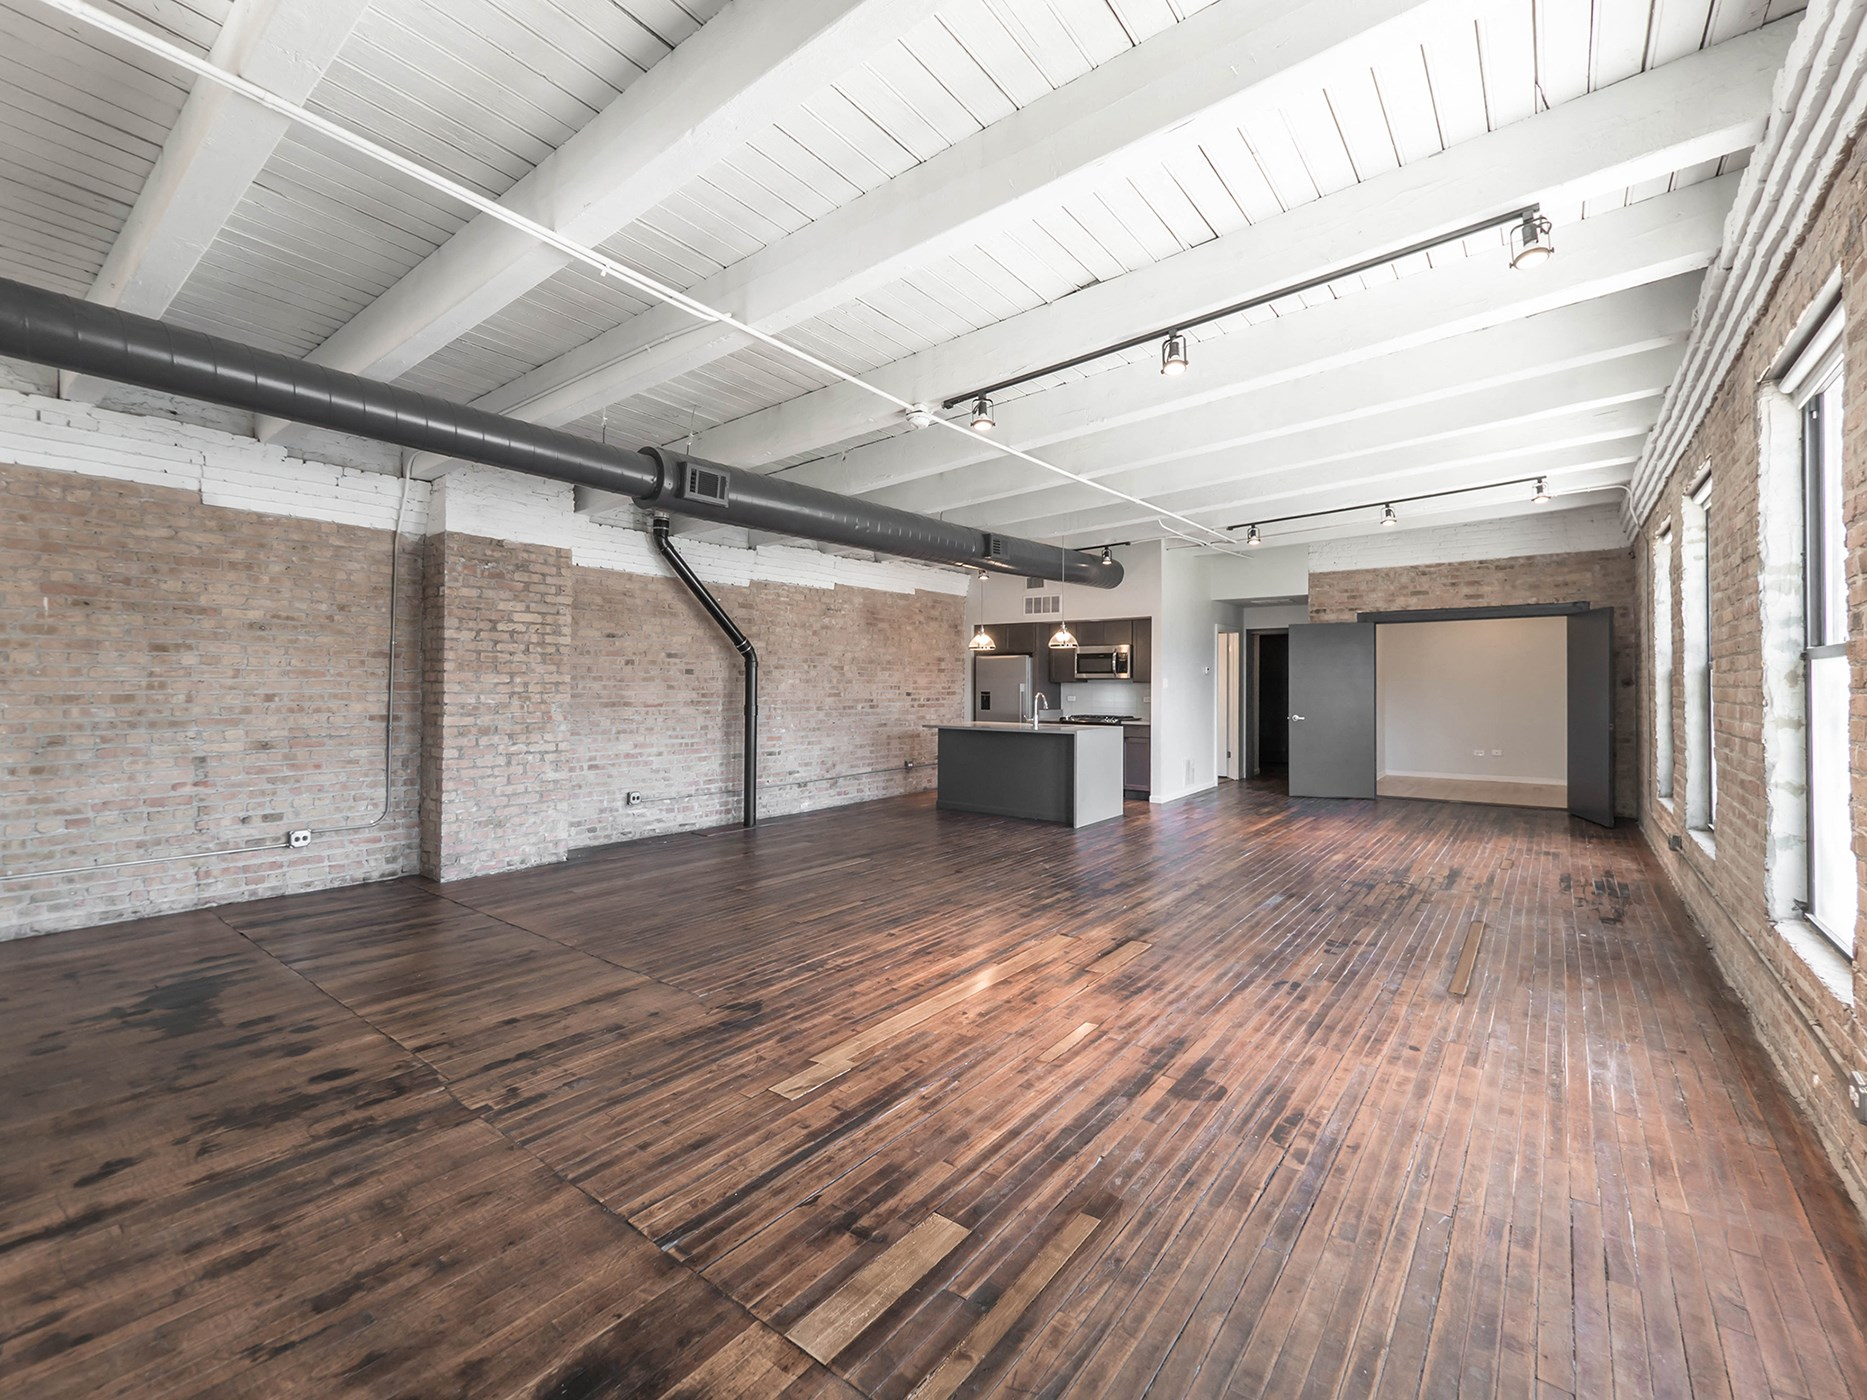 Large Open Floor Plans at 1012 W. Randolph St. Chicago, IL 60607